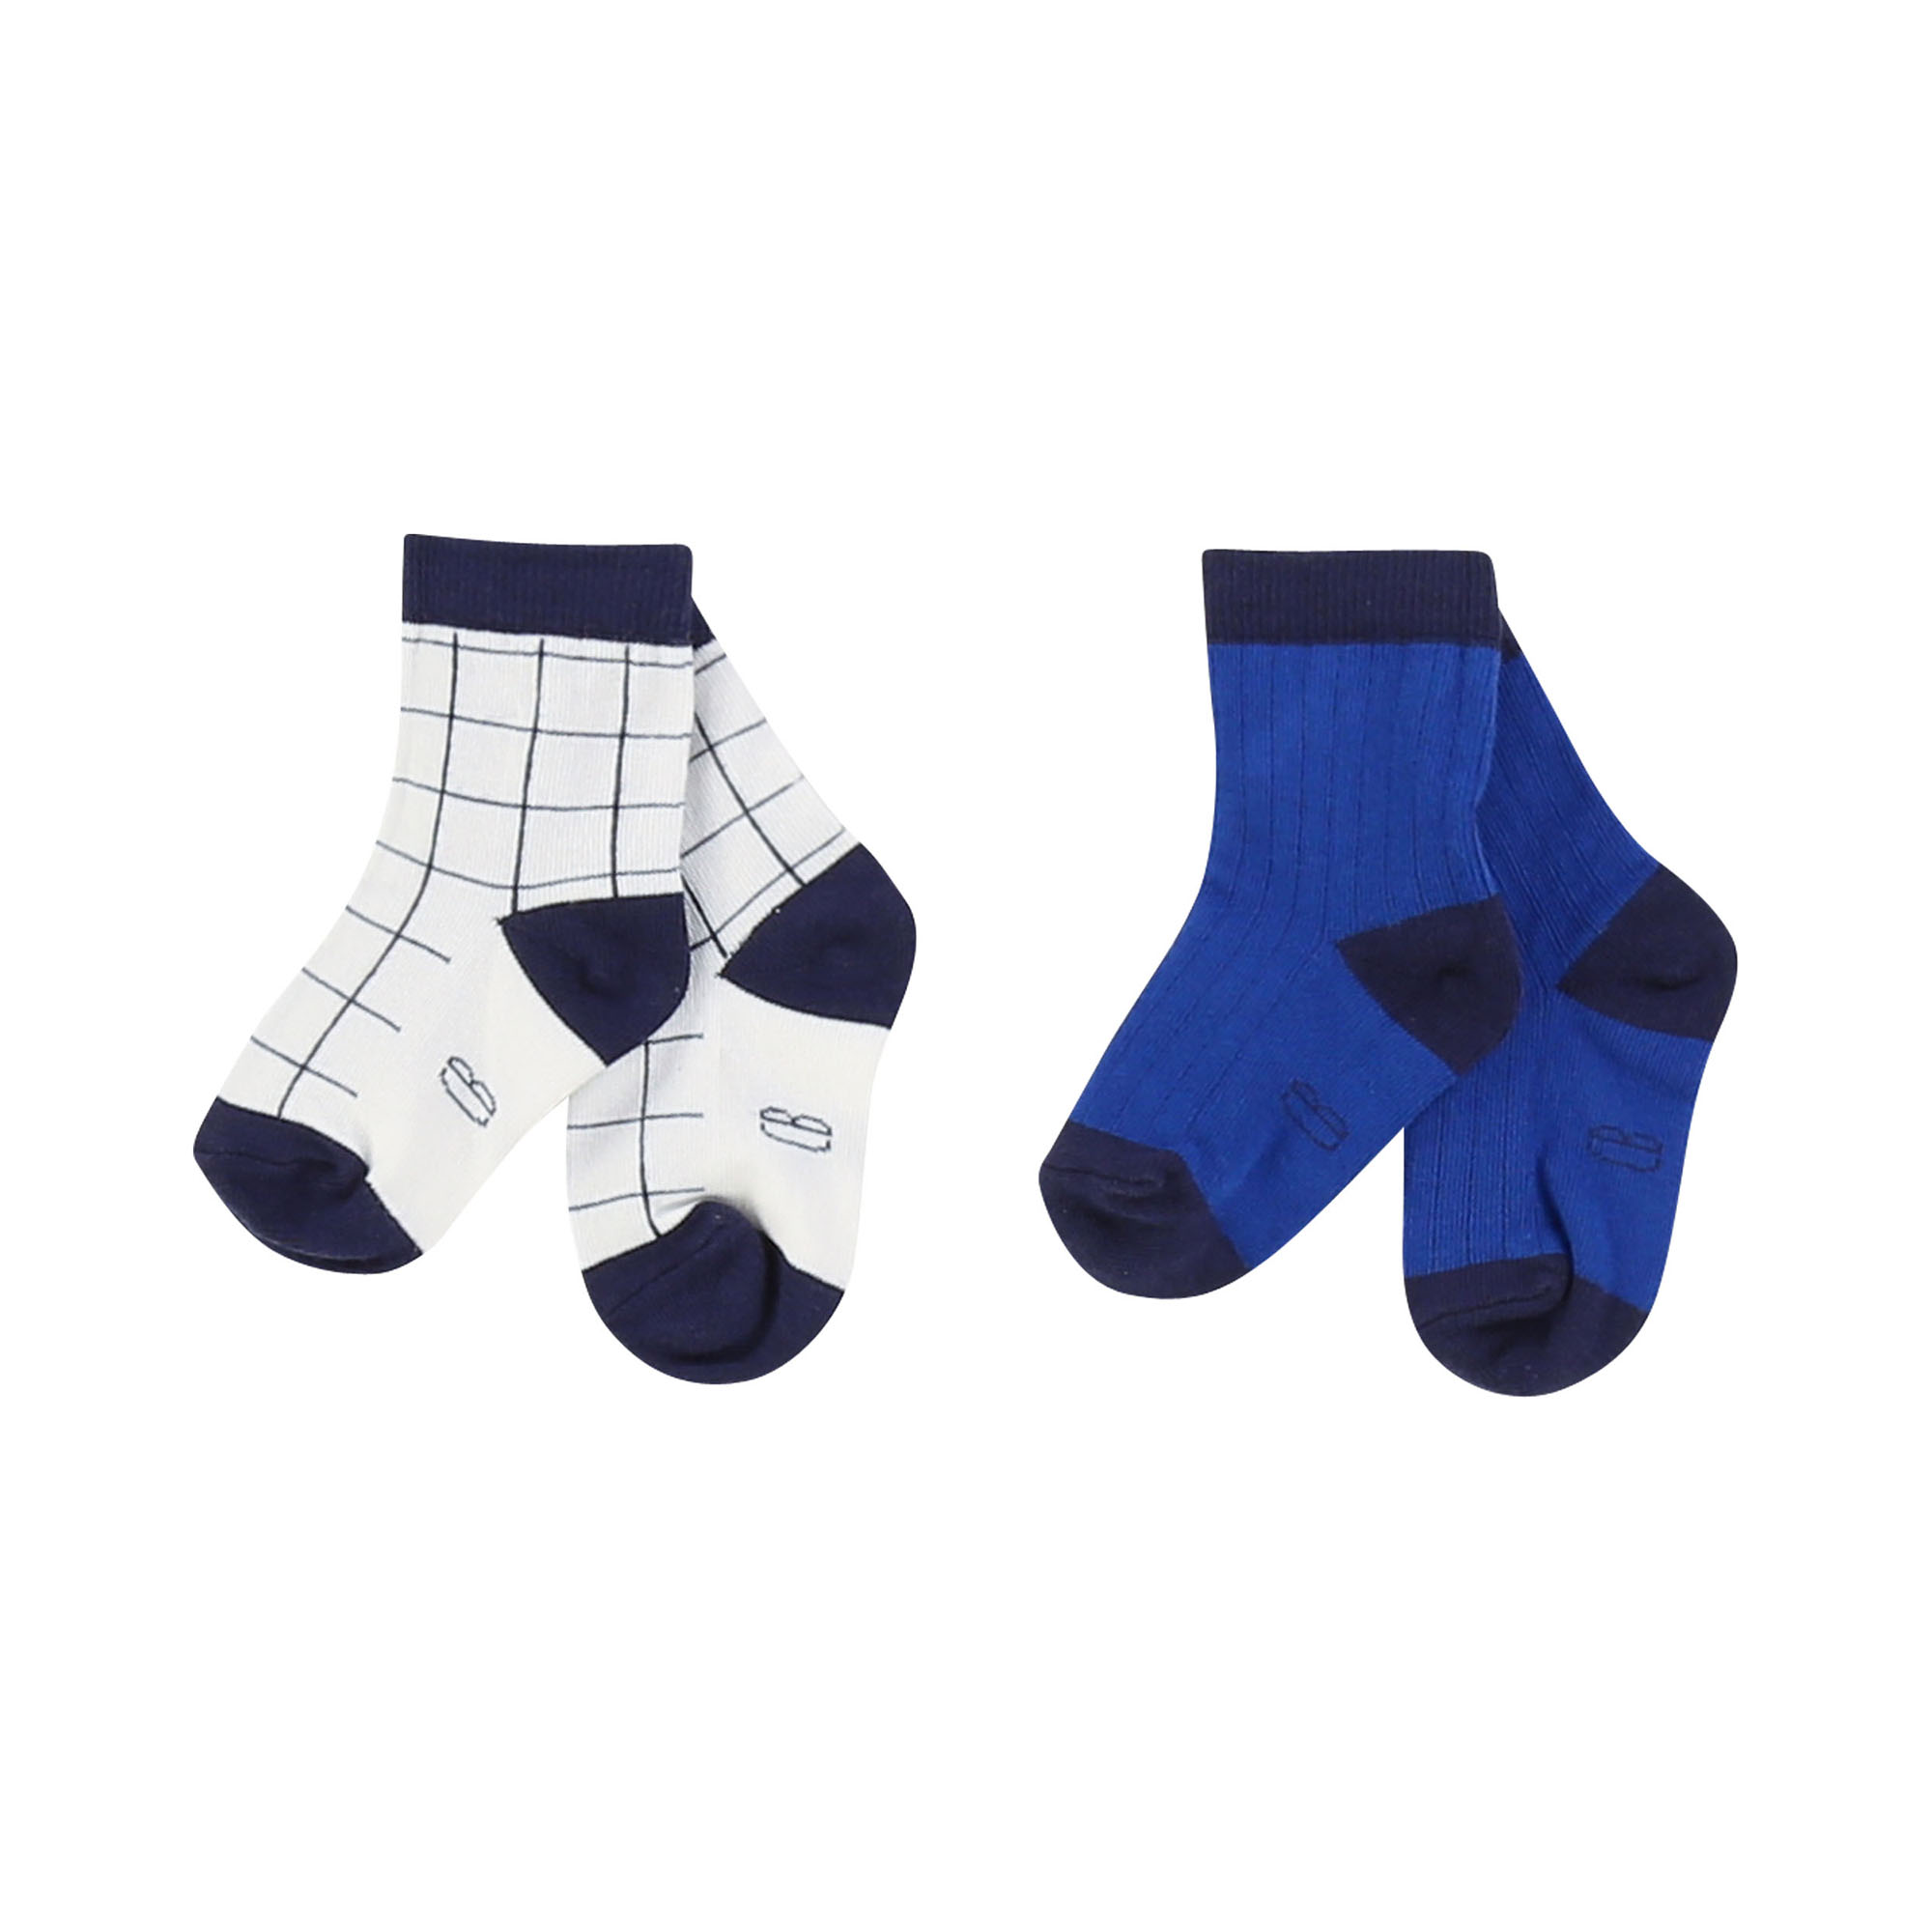 SOCKS (2) CARREMENT BEAU for BOY